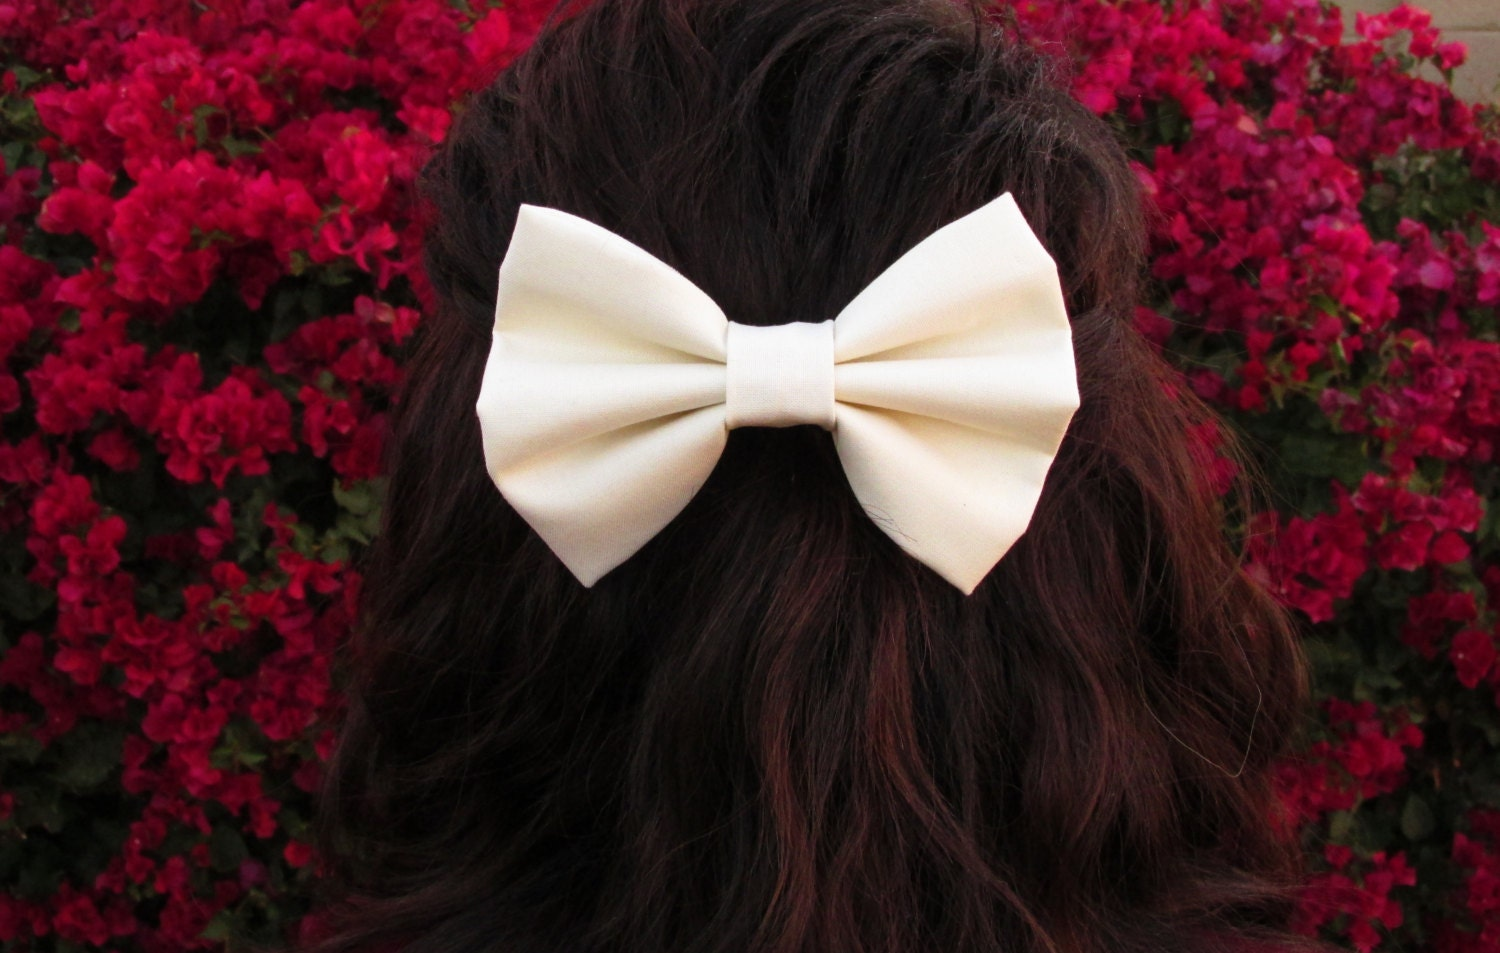 Hair Bows. The Hair Bow Company has a huge selection of hair bows in classic and oversized sizes, as well as our popular cheer bows and team color bows!